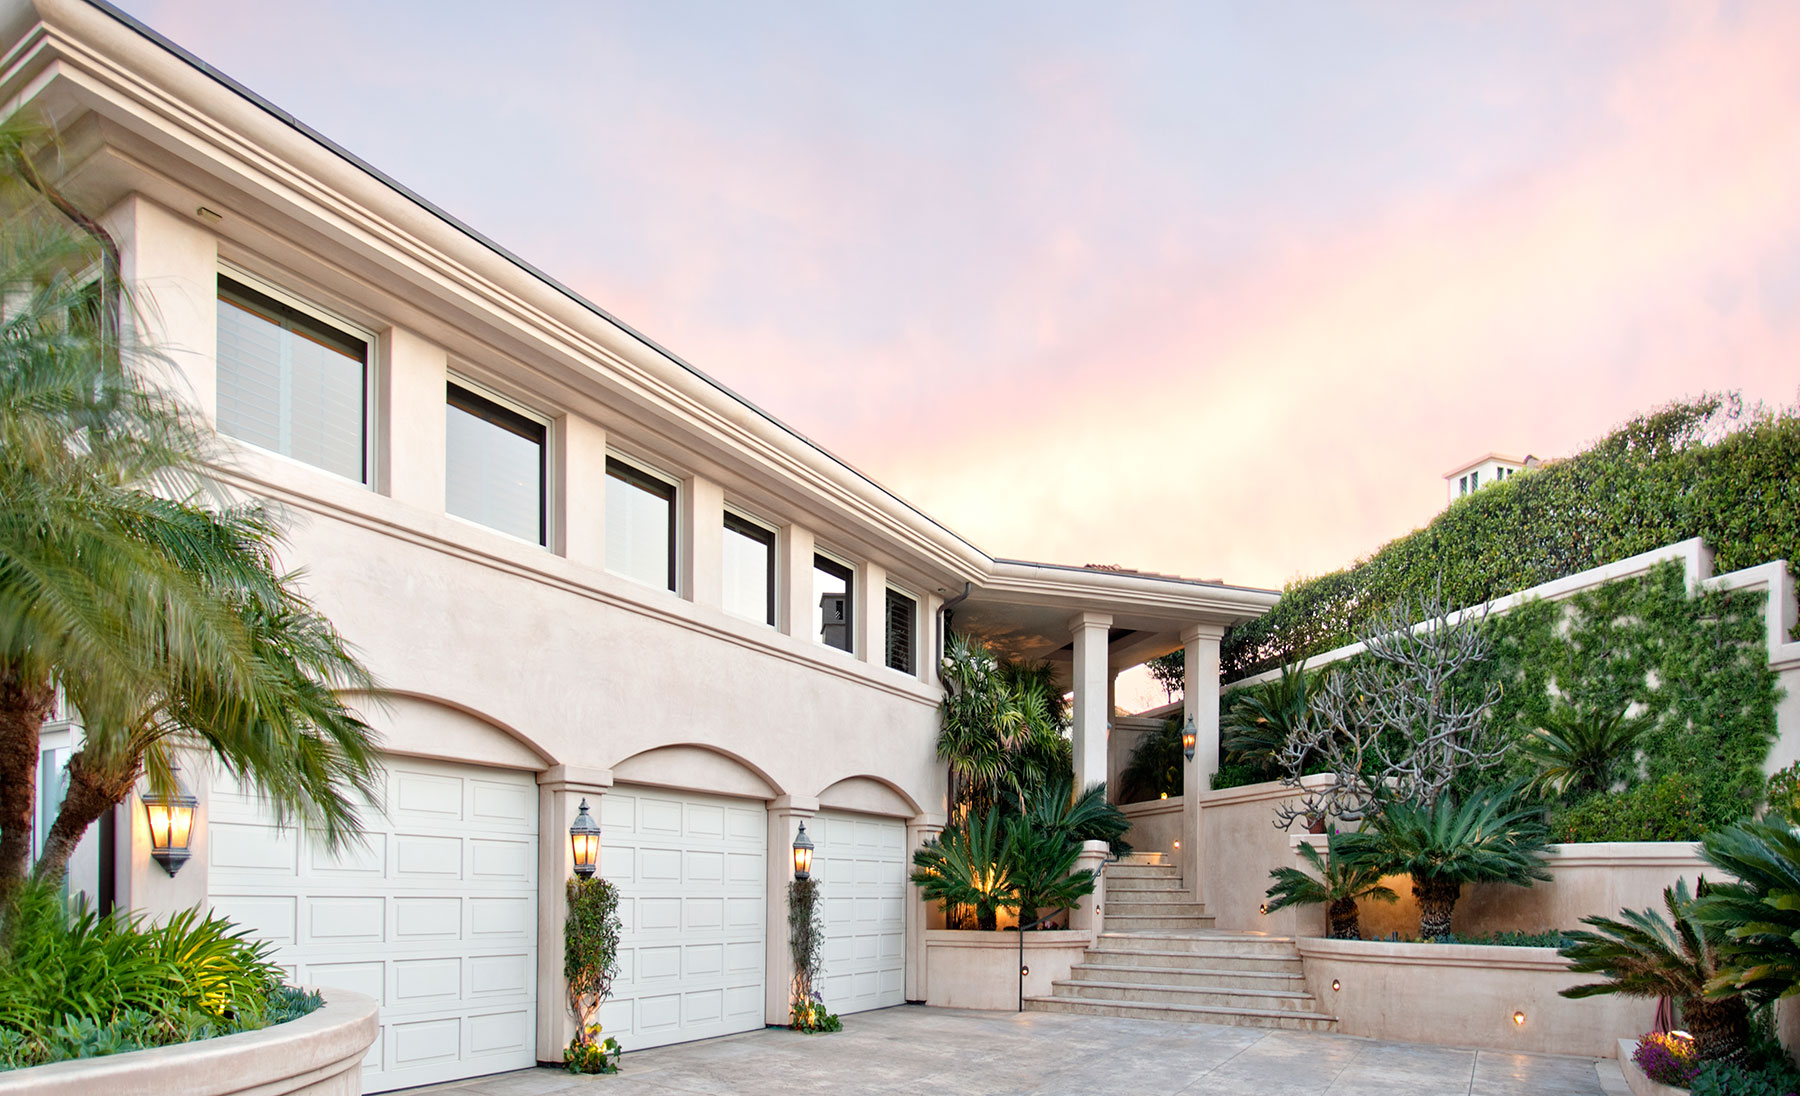 Single Family Home for Sale at 33 Monarch Bay Dr. Dana Point, California 92629 United States